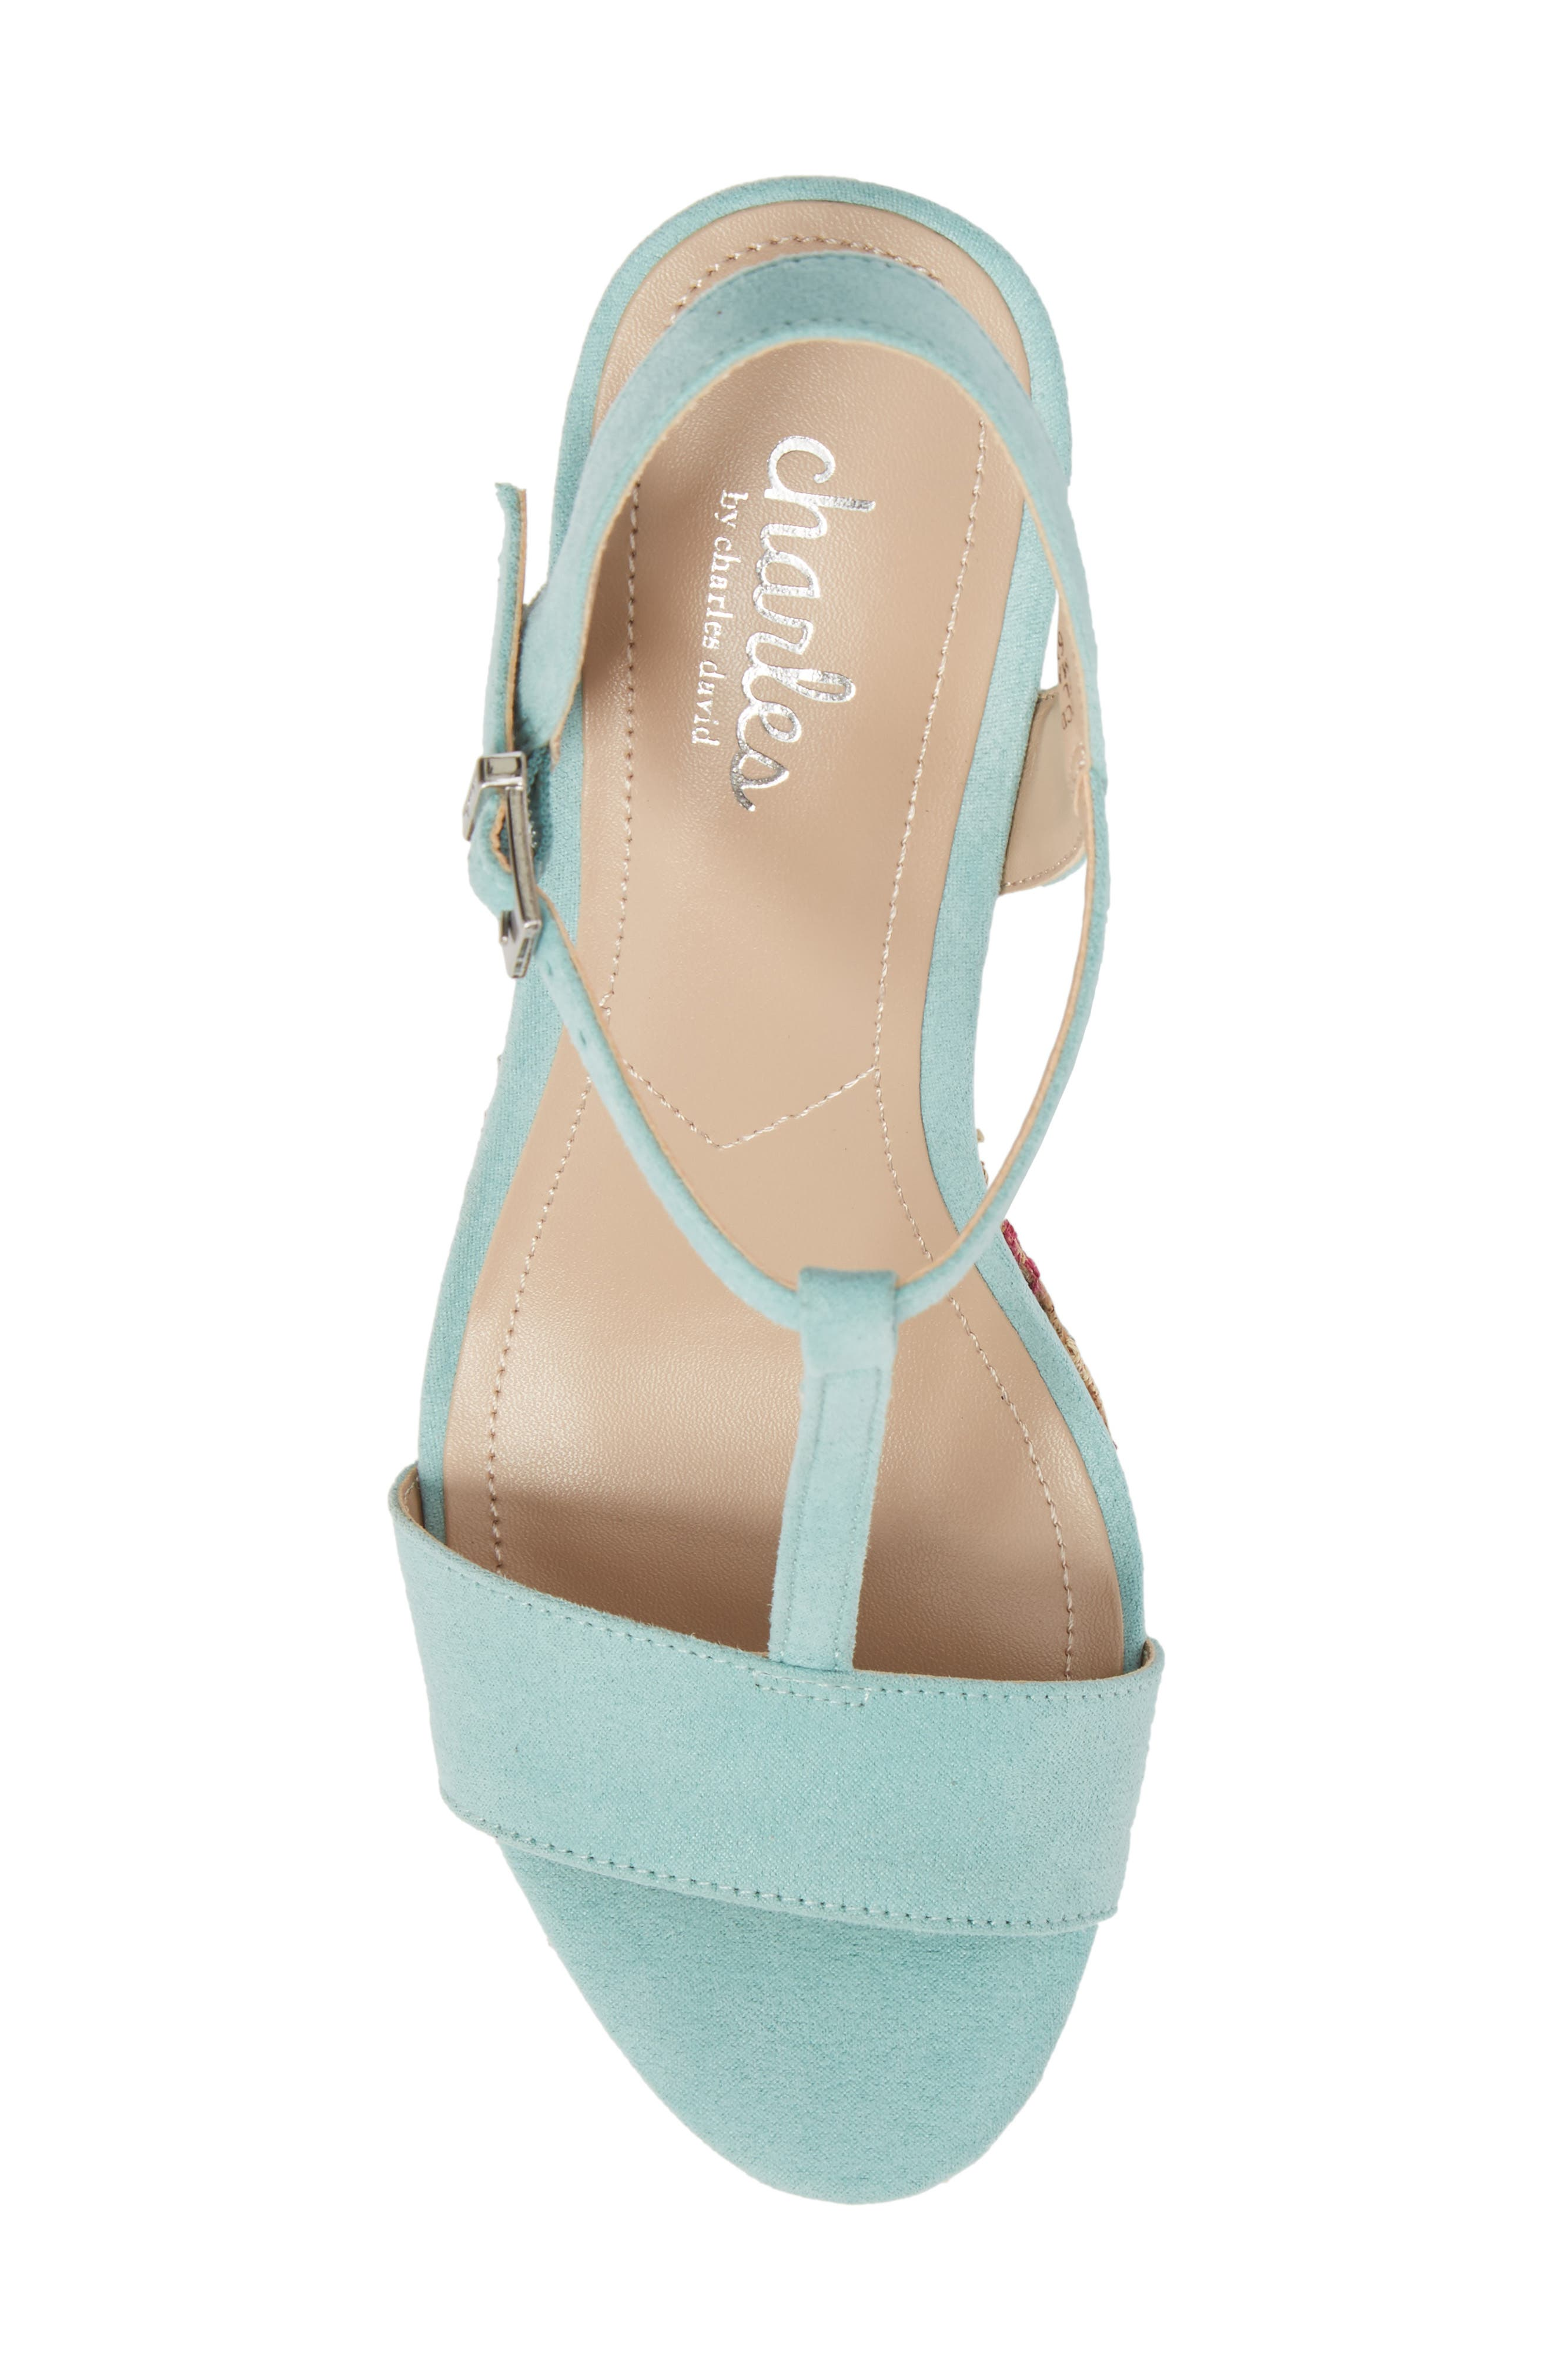 Laney Embroidered Wedge Sandal,                             Alternate thumbnail 5, color,                             Mint Green Suede